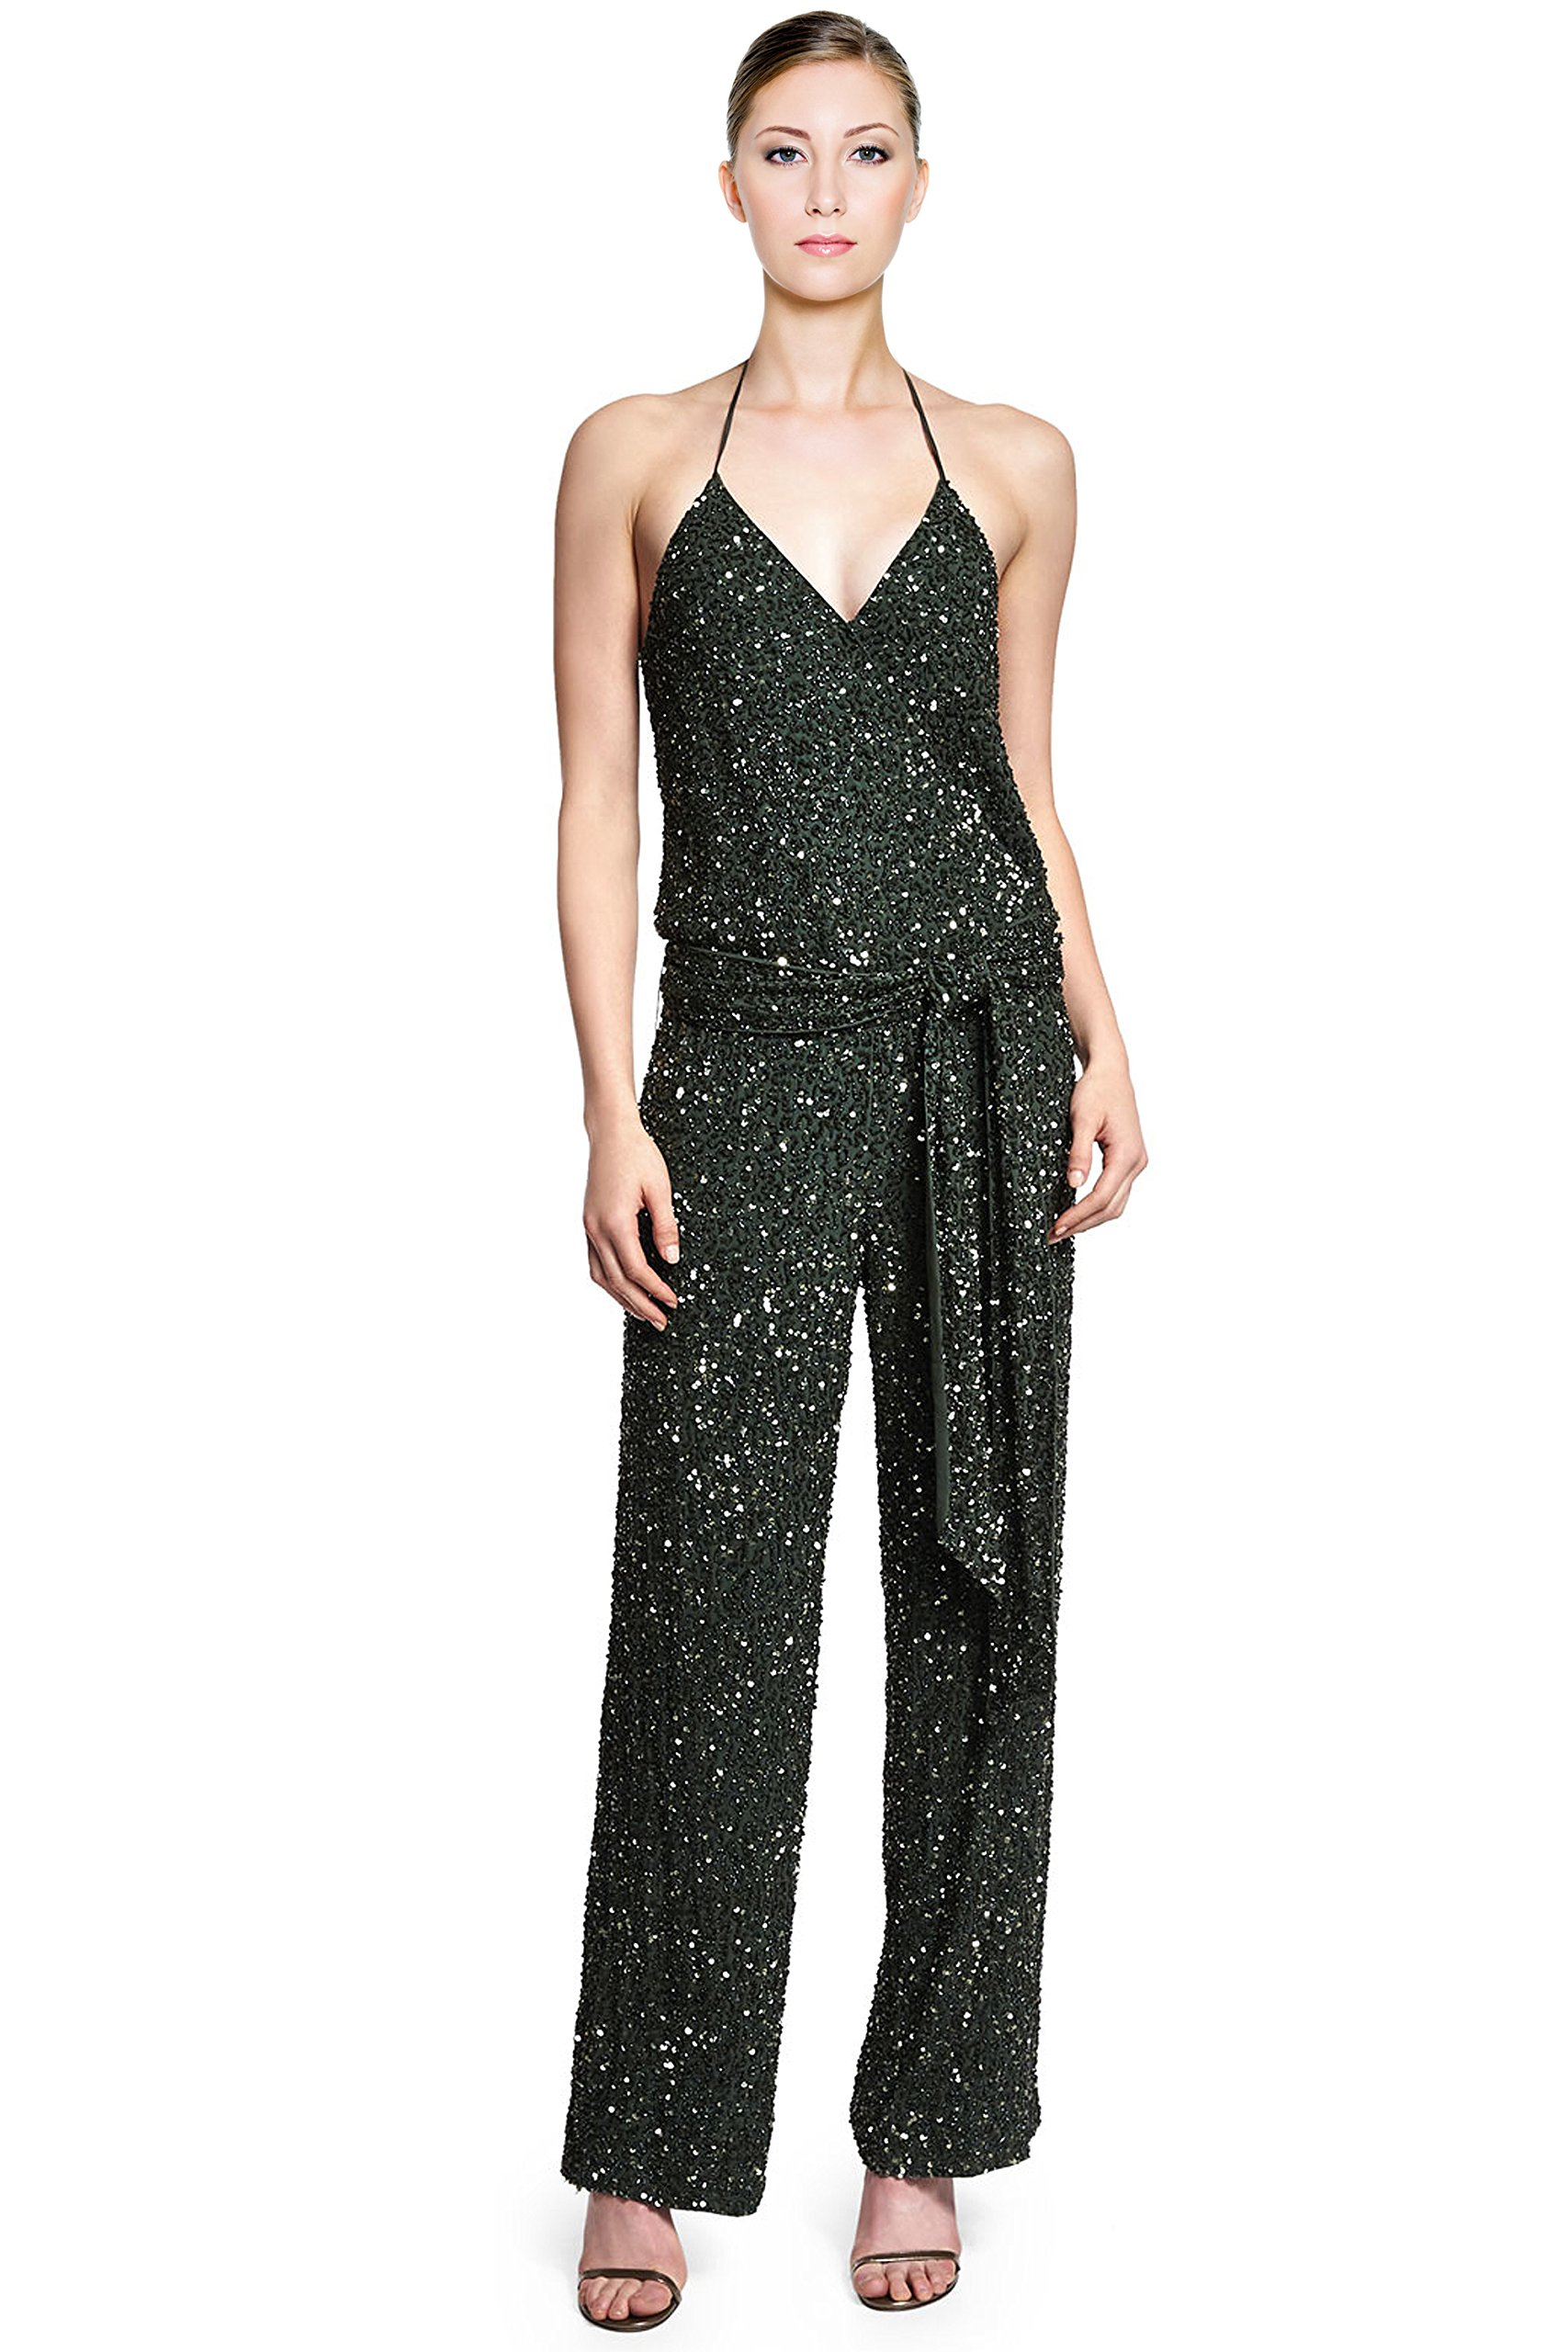 Haute Hippie Embellished Sequined Camisole Belted Jumpsuit